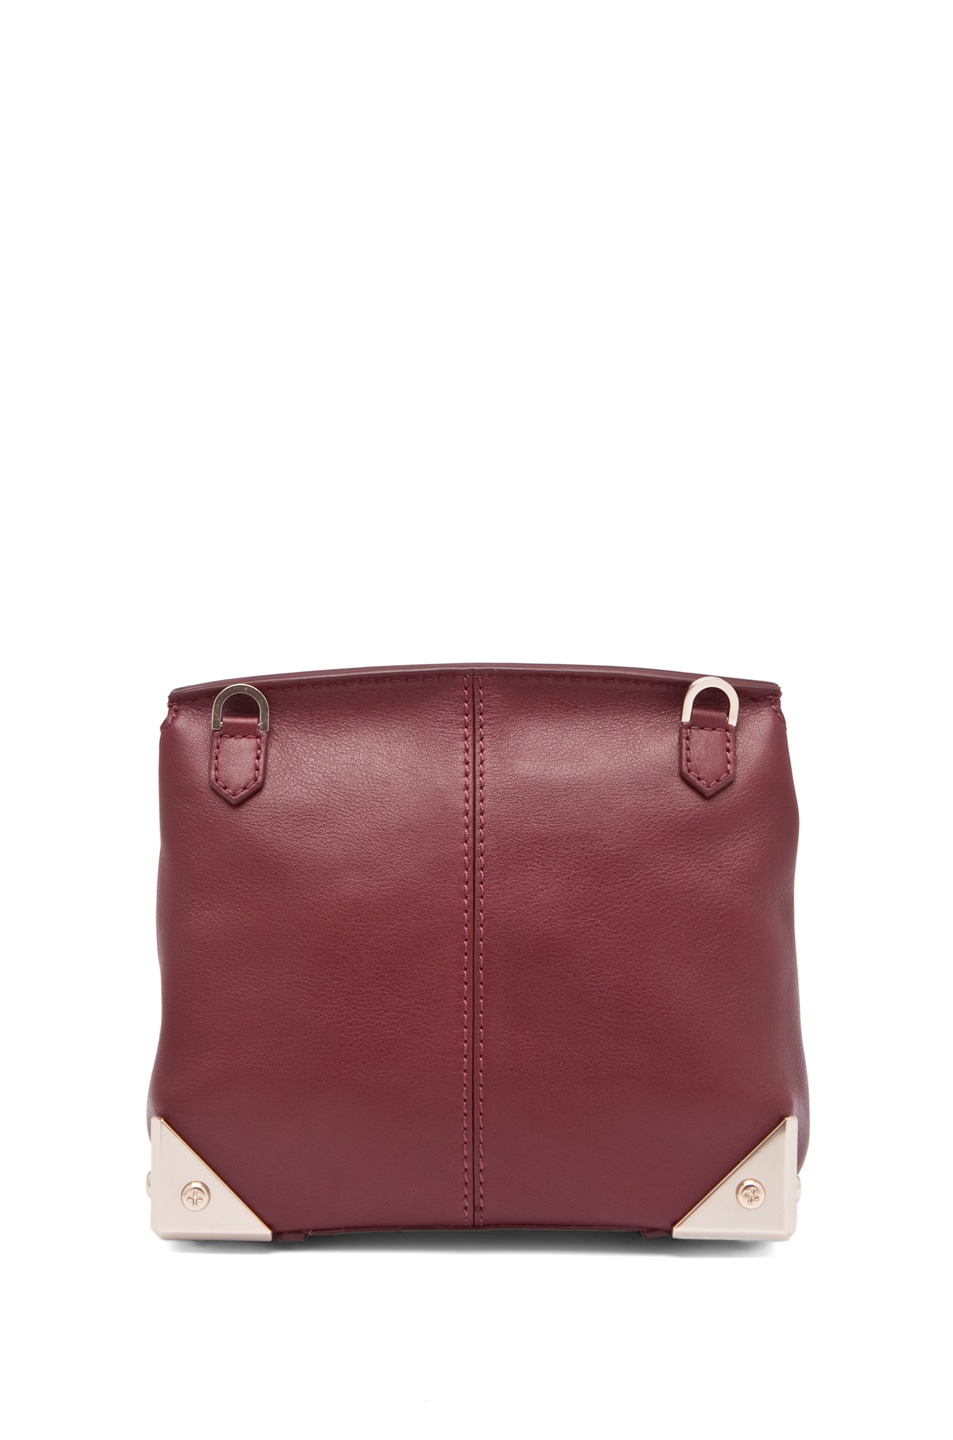 Image 2 of Alexander Wang Marion Sling in Spice